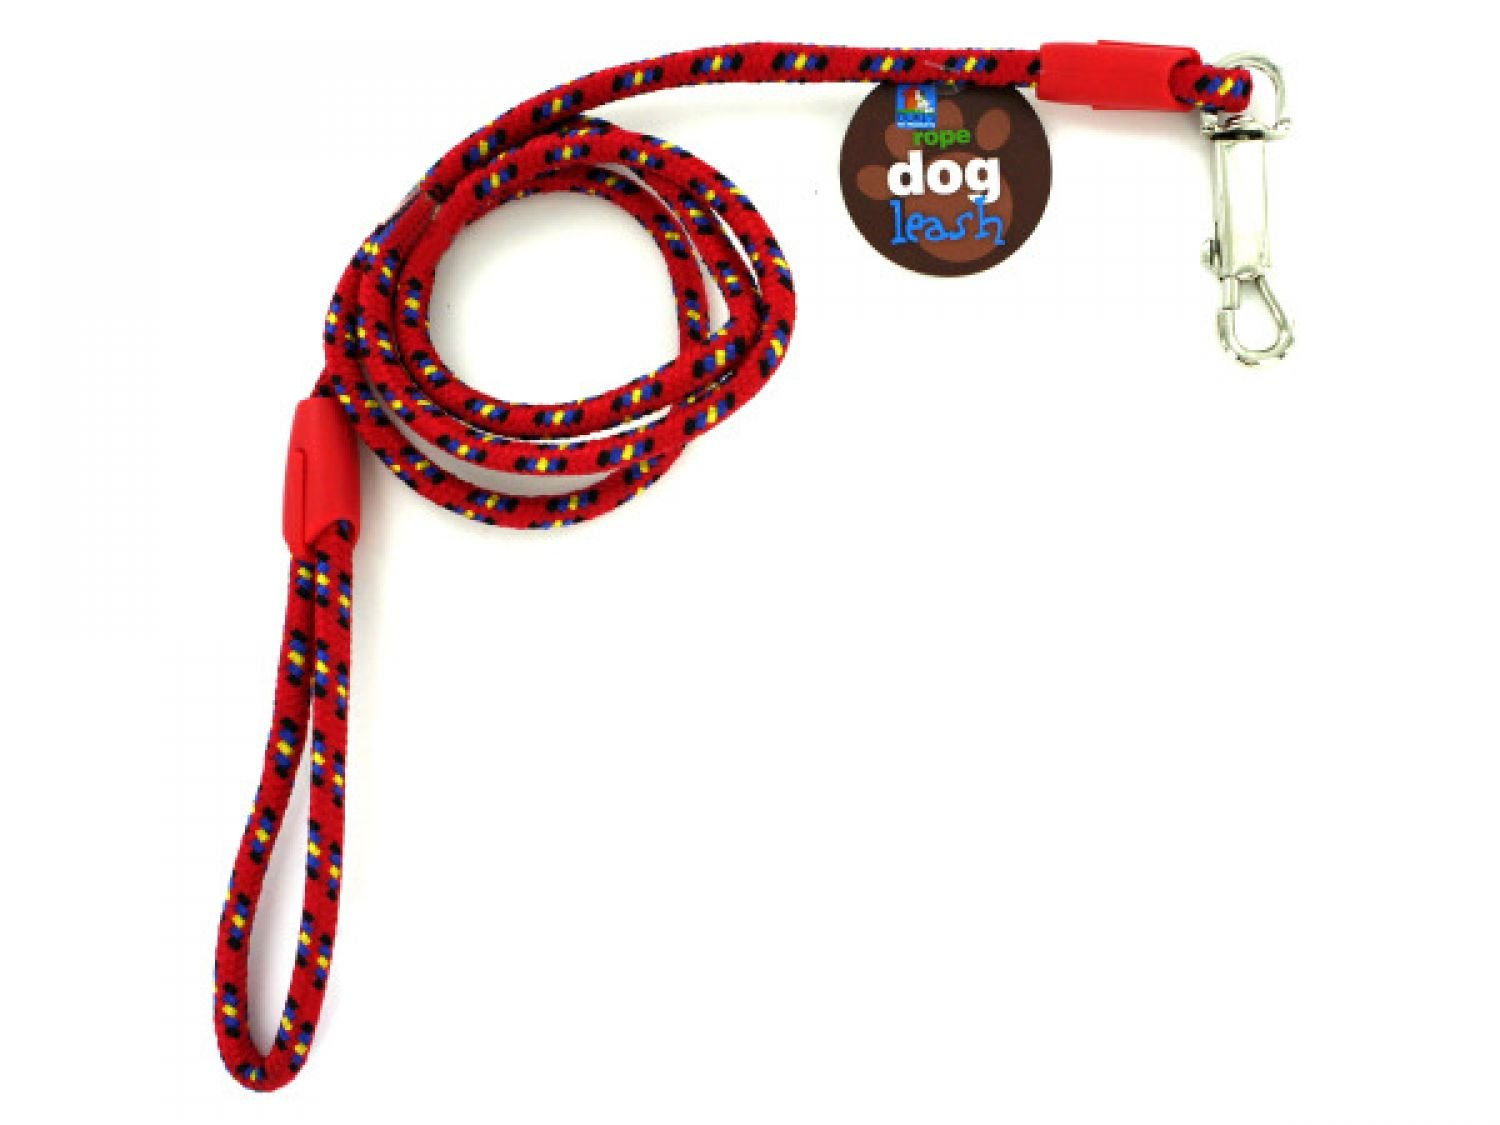 StarSun Depot Rope Dog Leash - Set of 96, [Pet Supplies, Collars, Leashes & Harnesses] by StarSun Depot